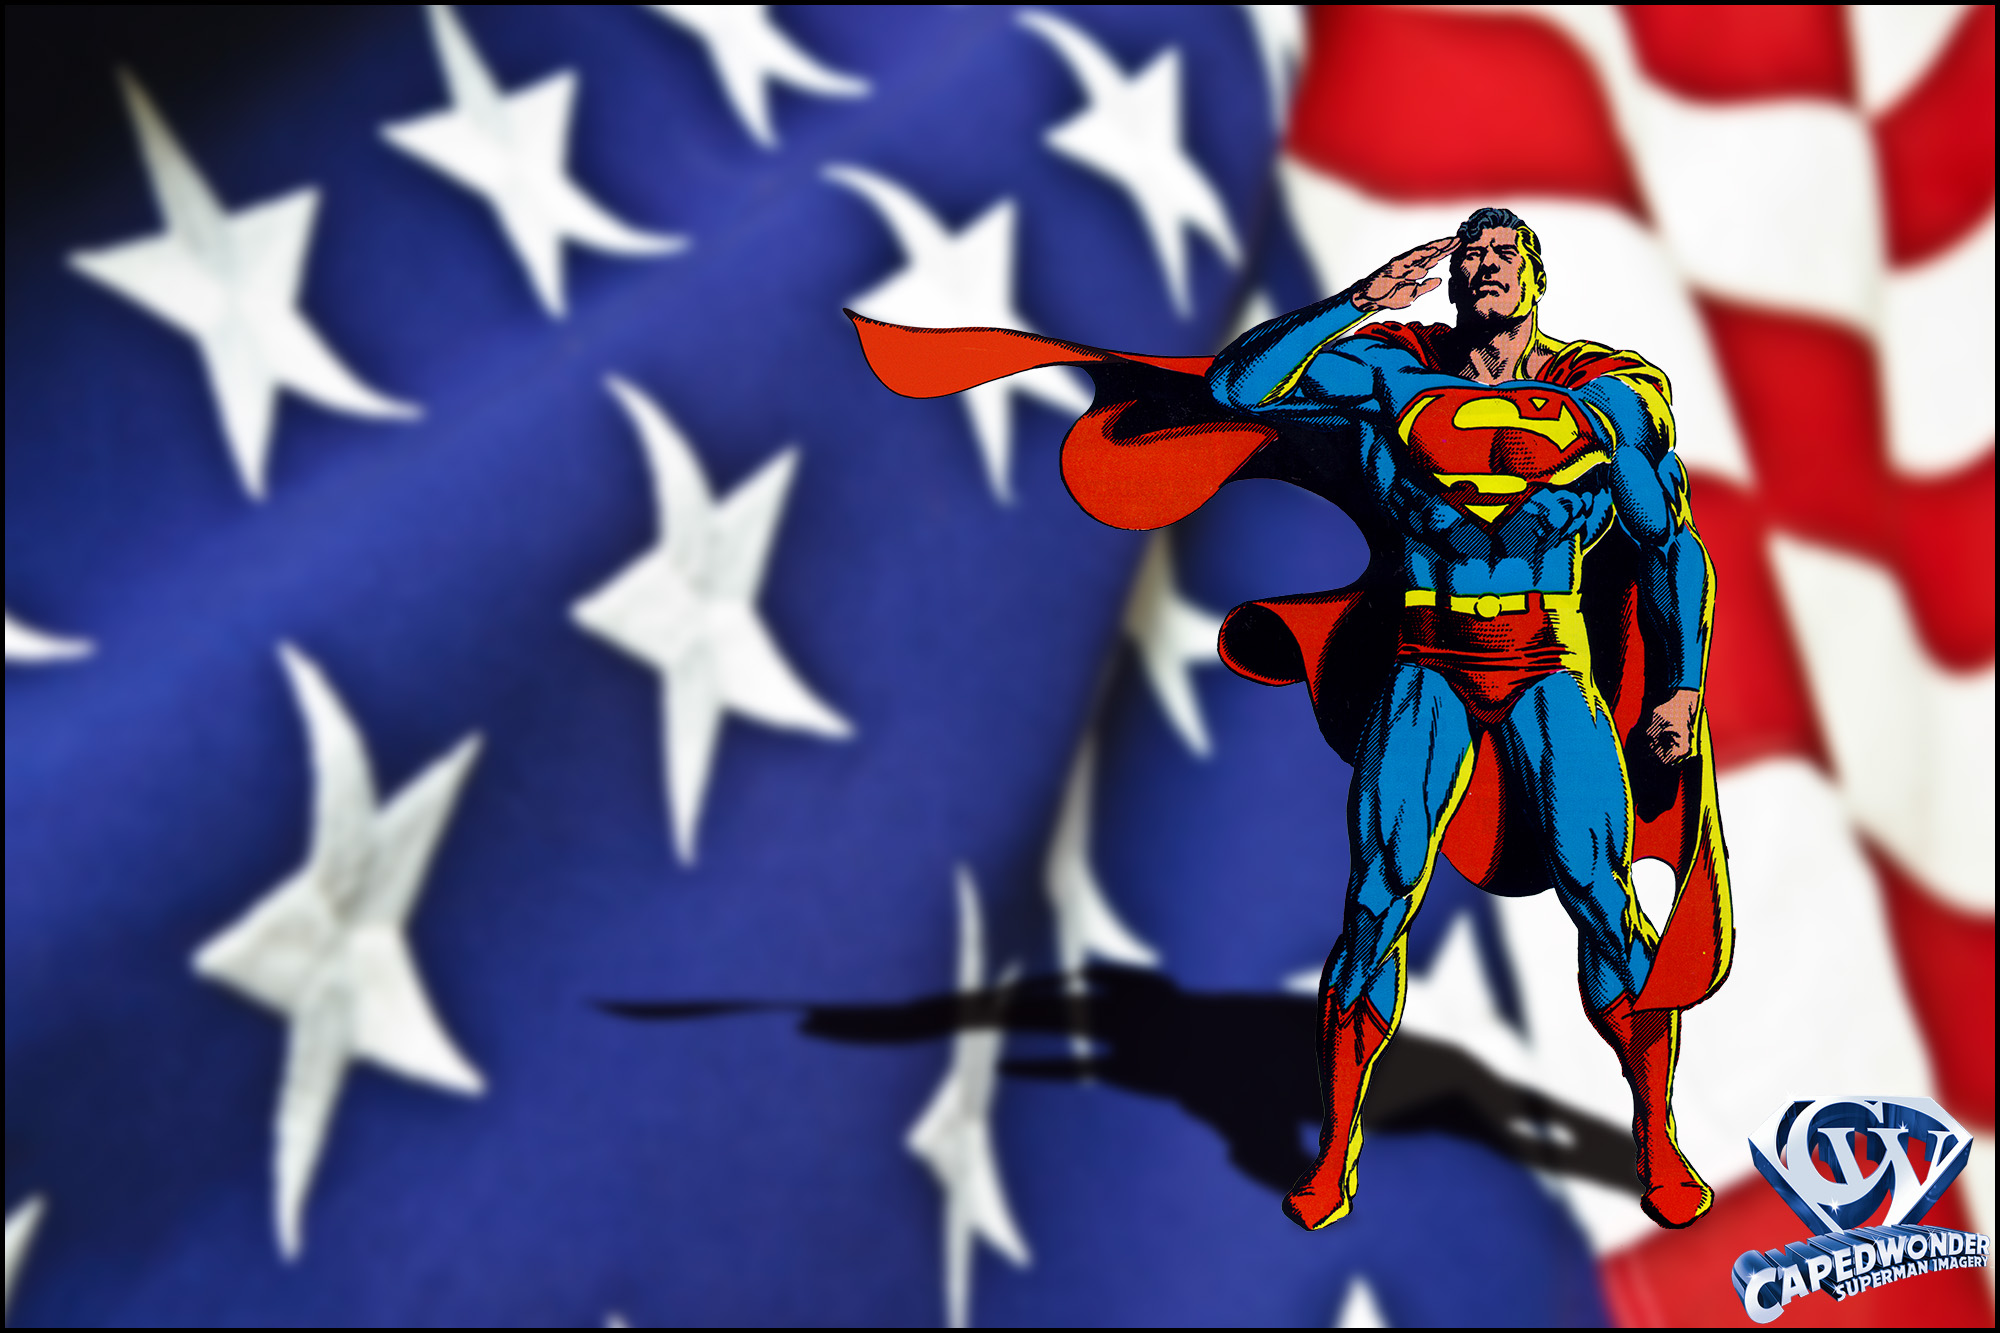 Memorial Day composite by Jim Bowers. Superman art by Jerry Ordway.